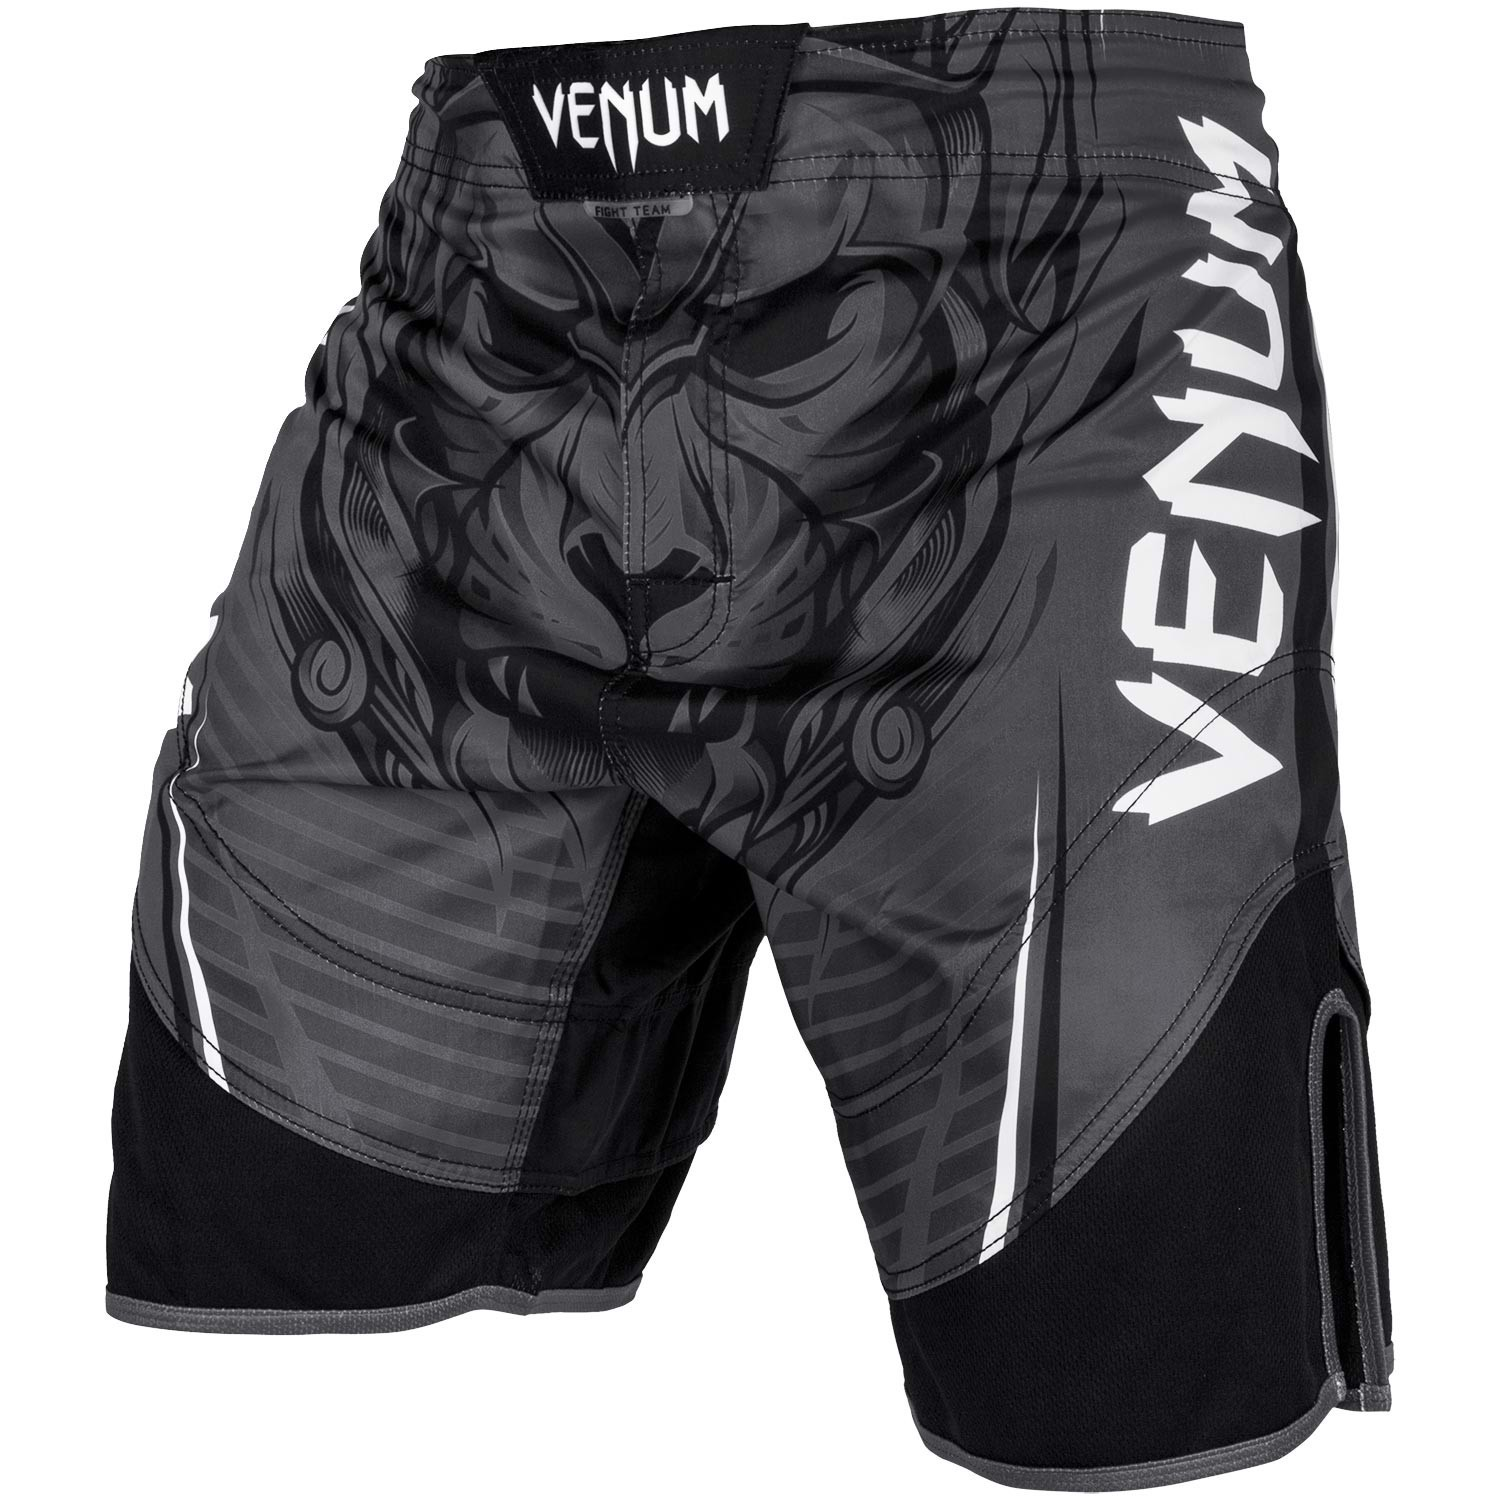 QUẦN MMA VENUM BLOODY ROAR FIGHTSHORTS - GREY